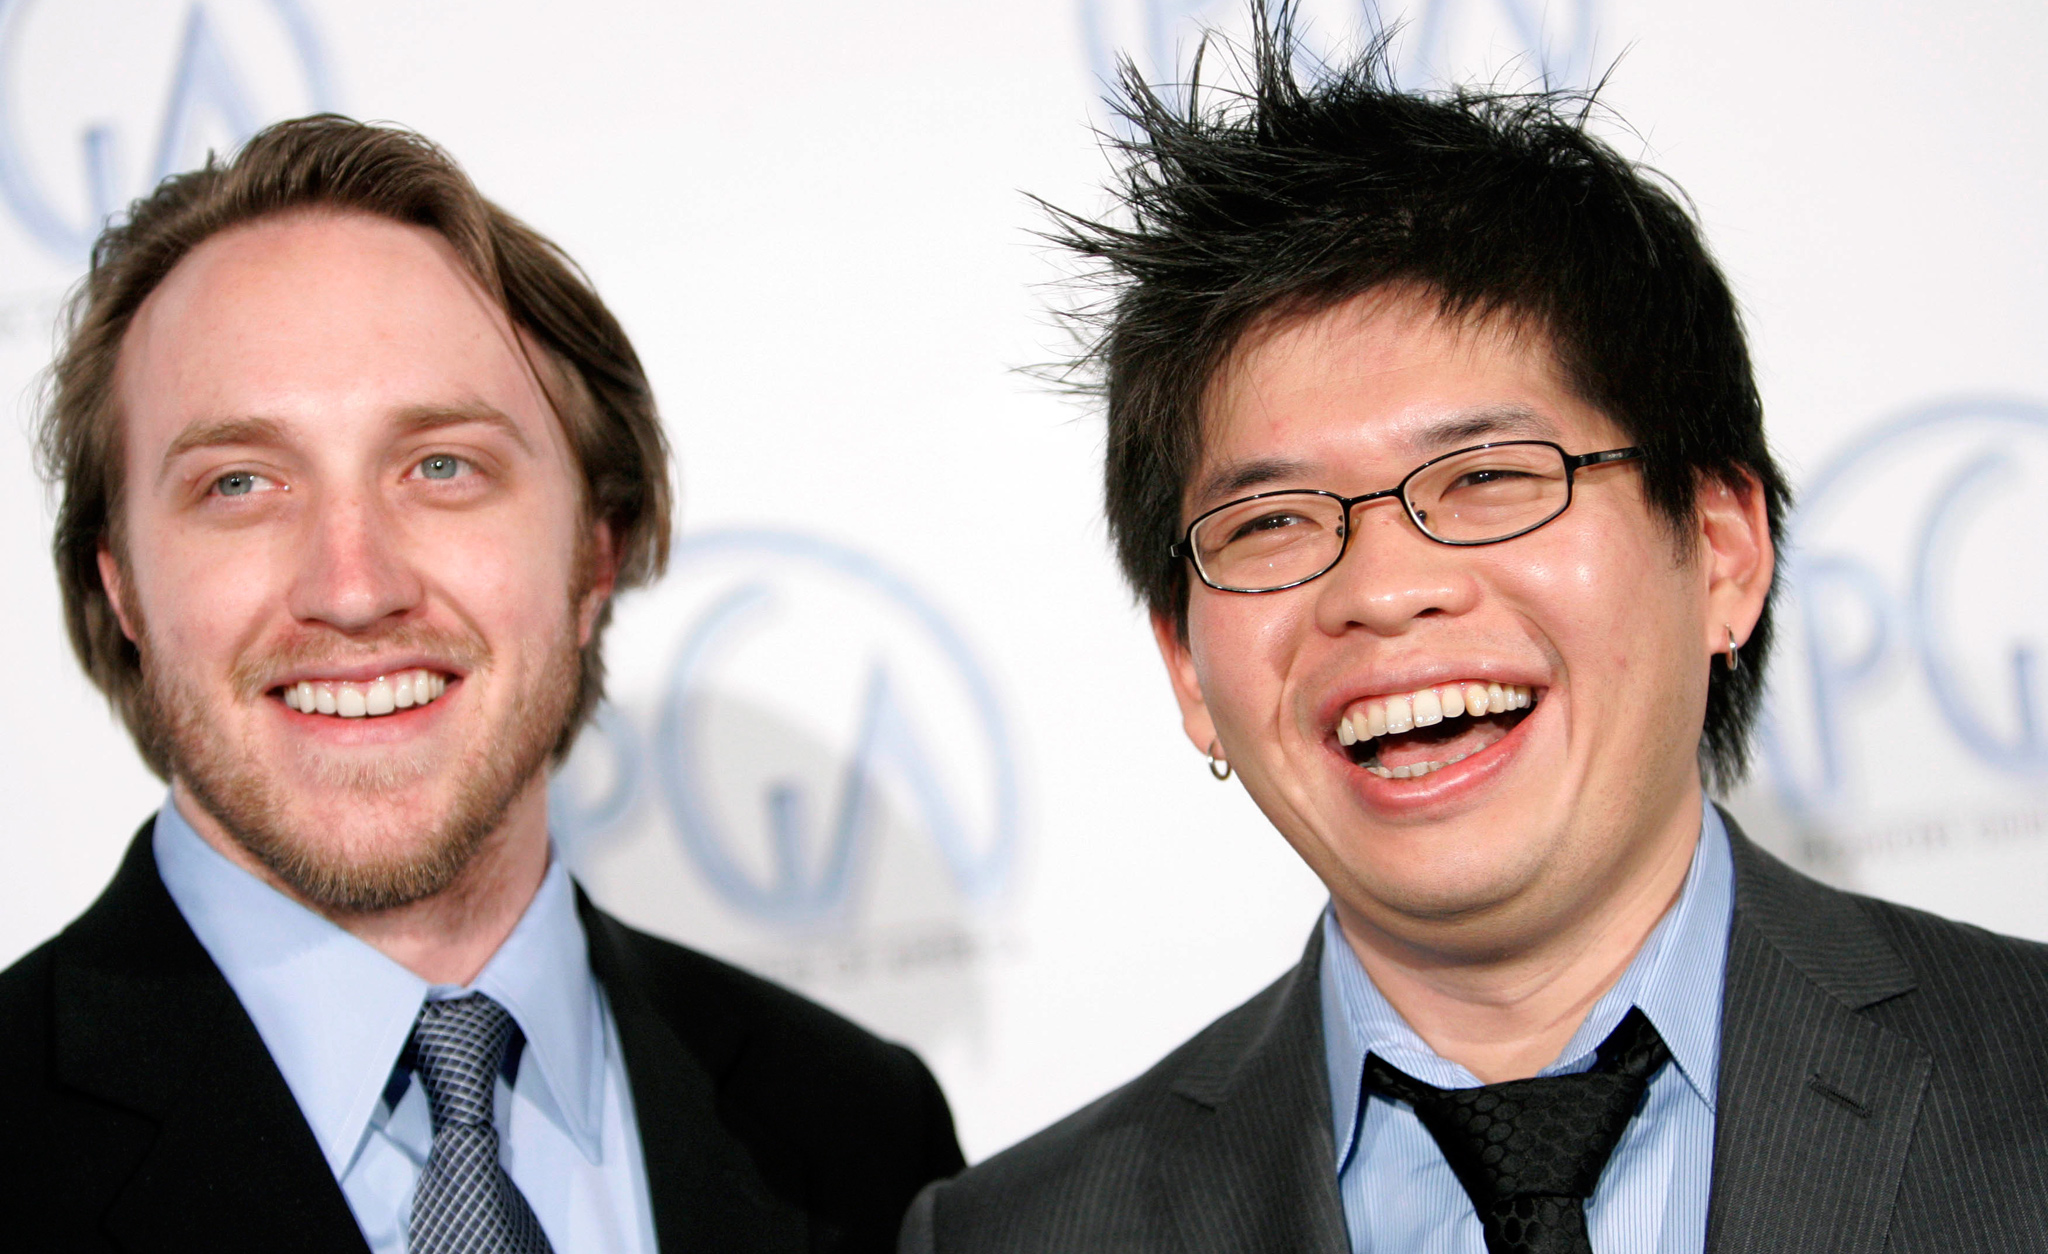 25: Chad Hurley and Steve Chen